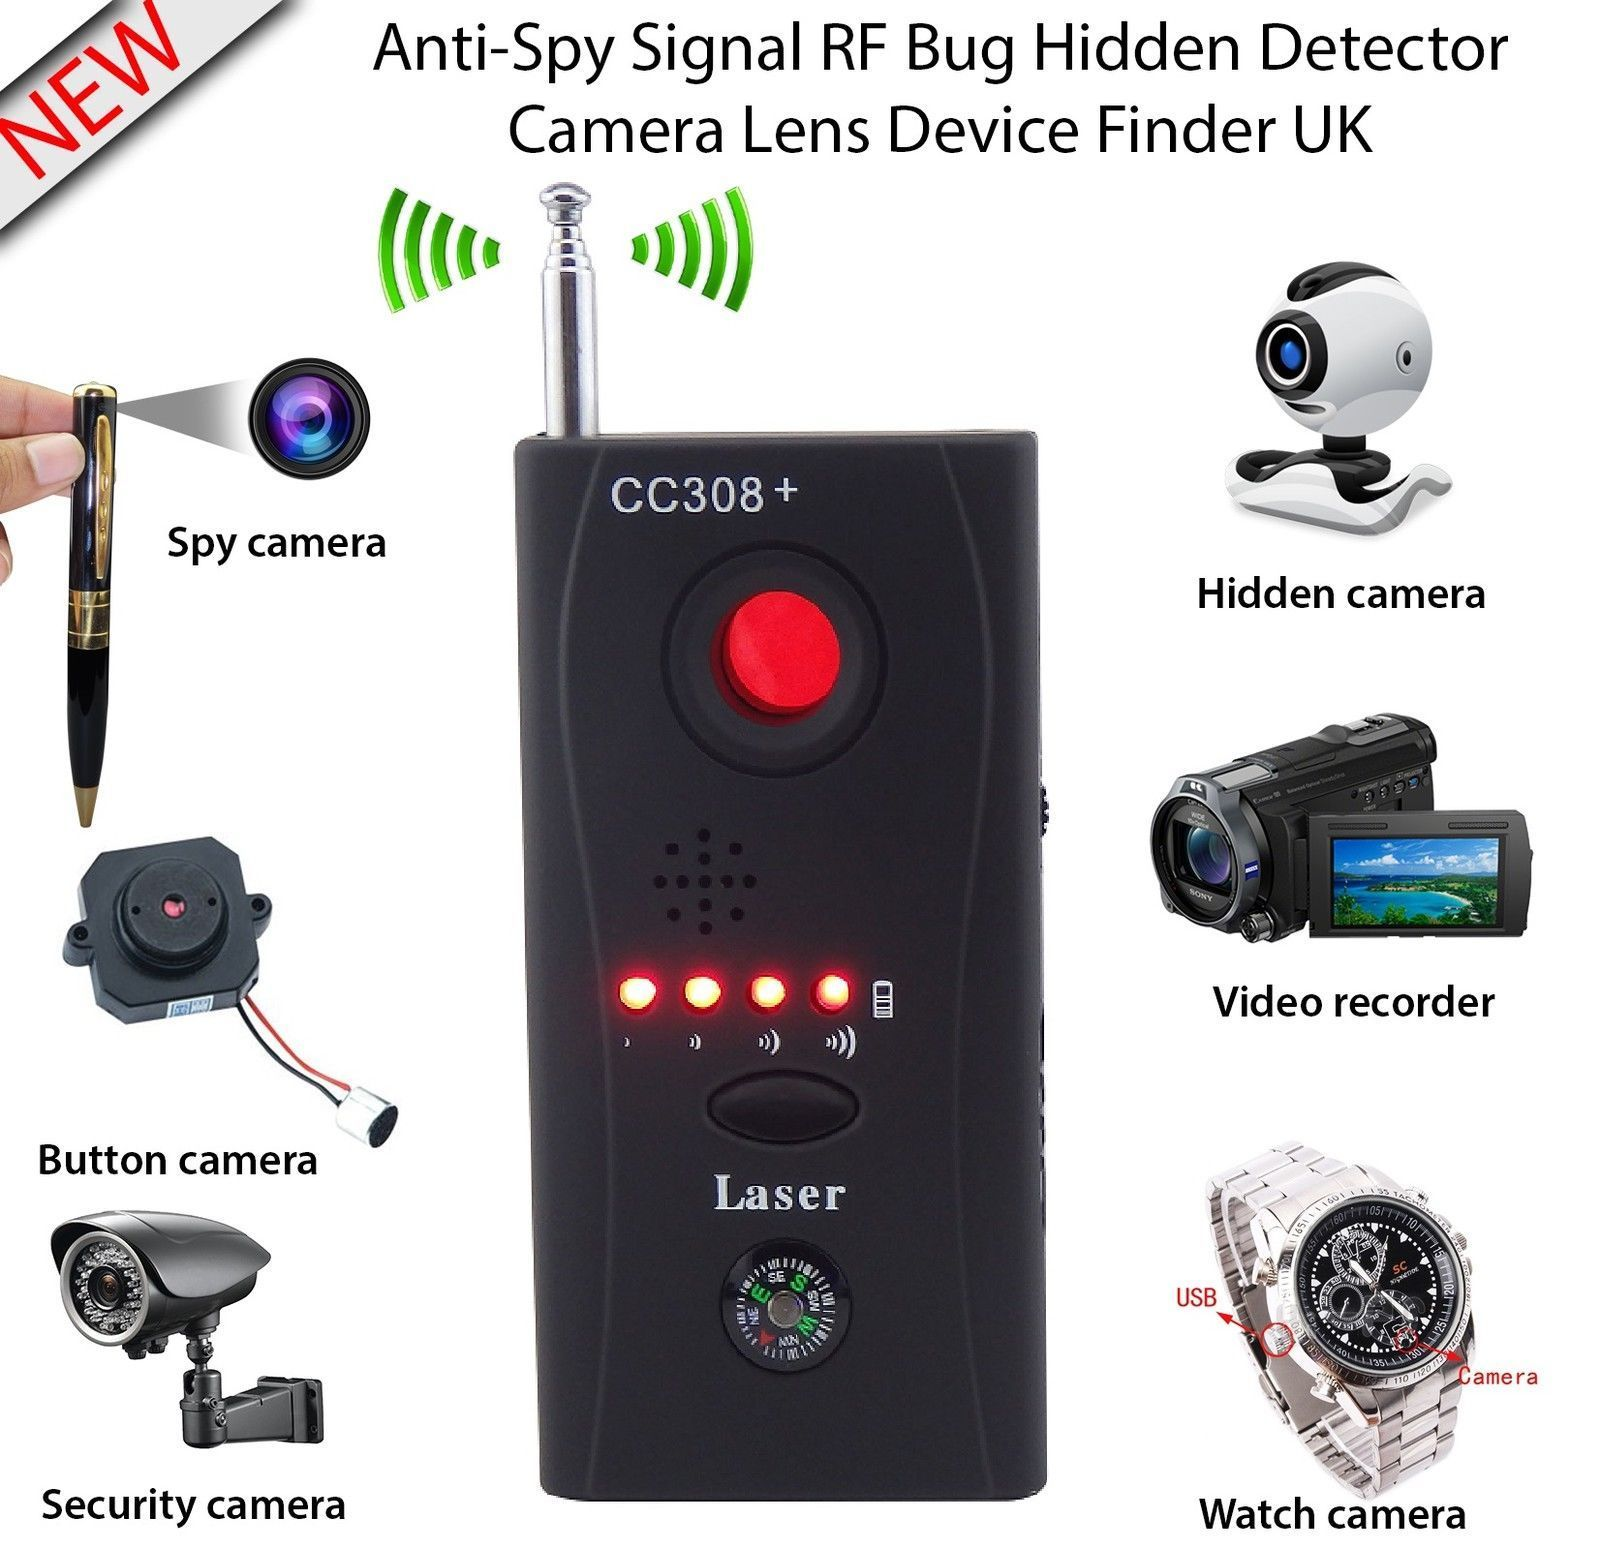 Anti Spy Detector Camera GSM Audio Bug Finder Wireless GPS Signal RF Tracker Privacy Protect Security US Plug